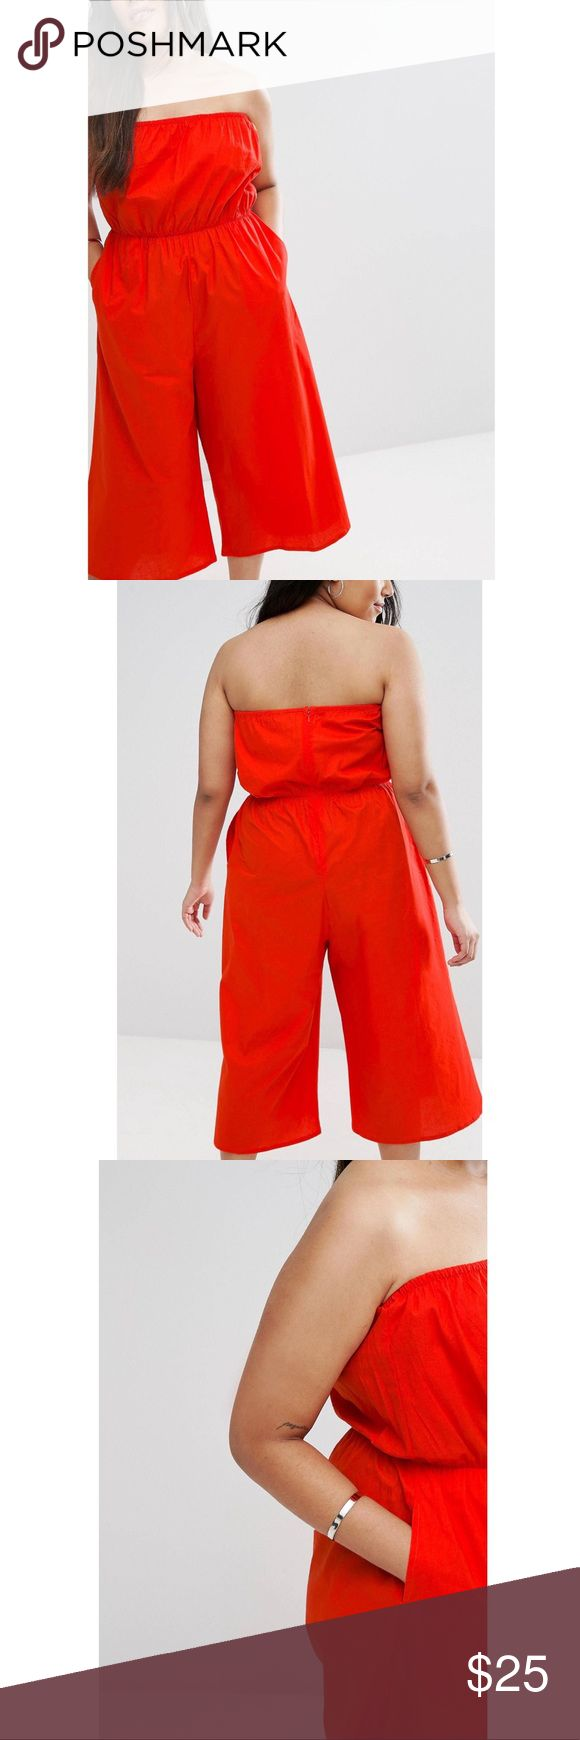 ASOS Curve Bandeau Jumpsuit in Cotton Light, airy, and comfortable. Has pockets! ASOS Curve Pants Jumpsuits & Rompers